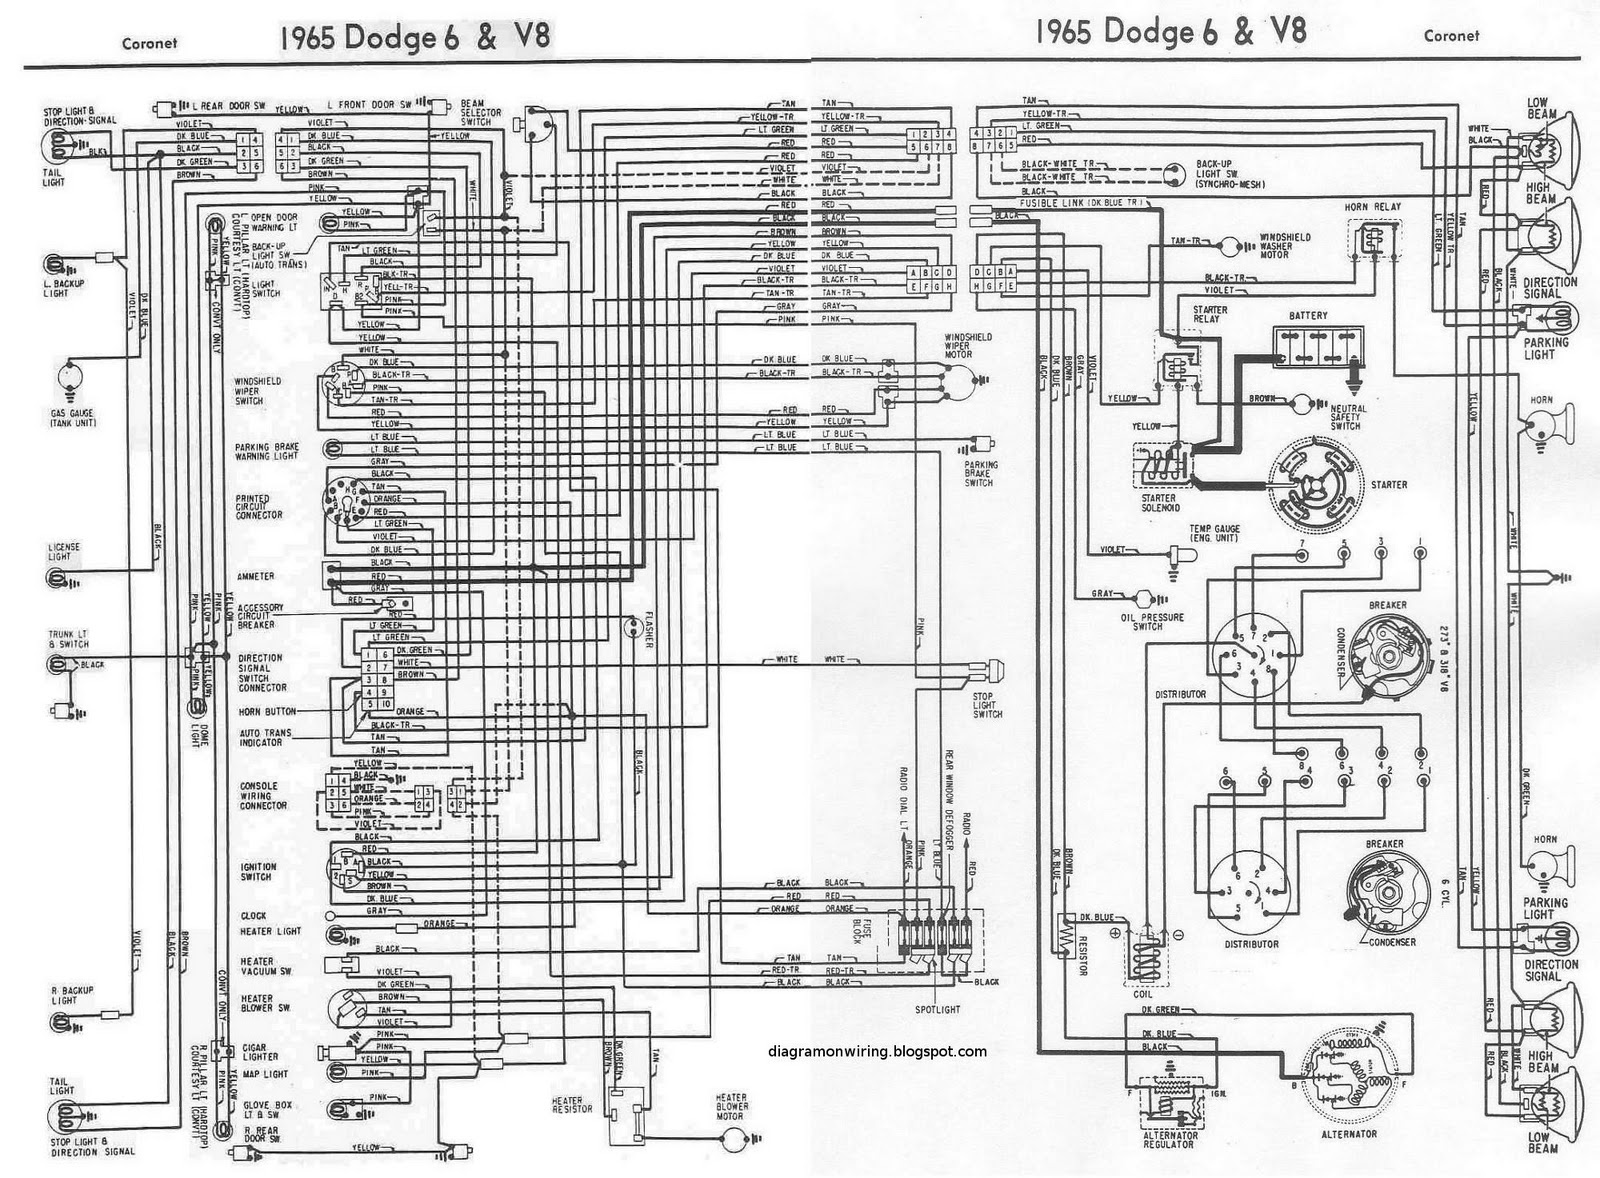 hight resolution of dodge demon wiring diagrams library of wiring diagrams u ti com jpg 1600x1178 plymouth duster headlight